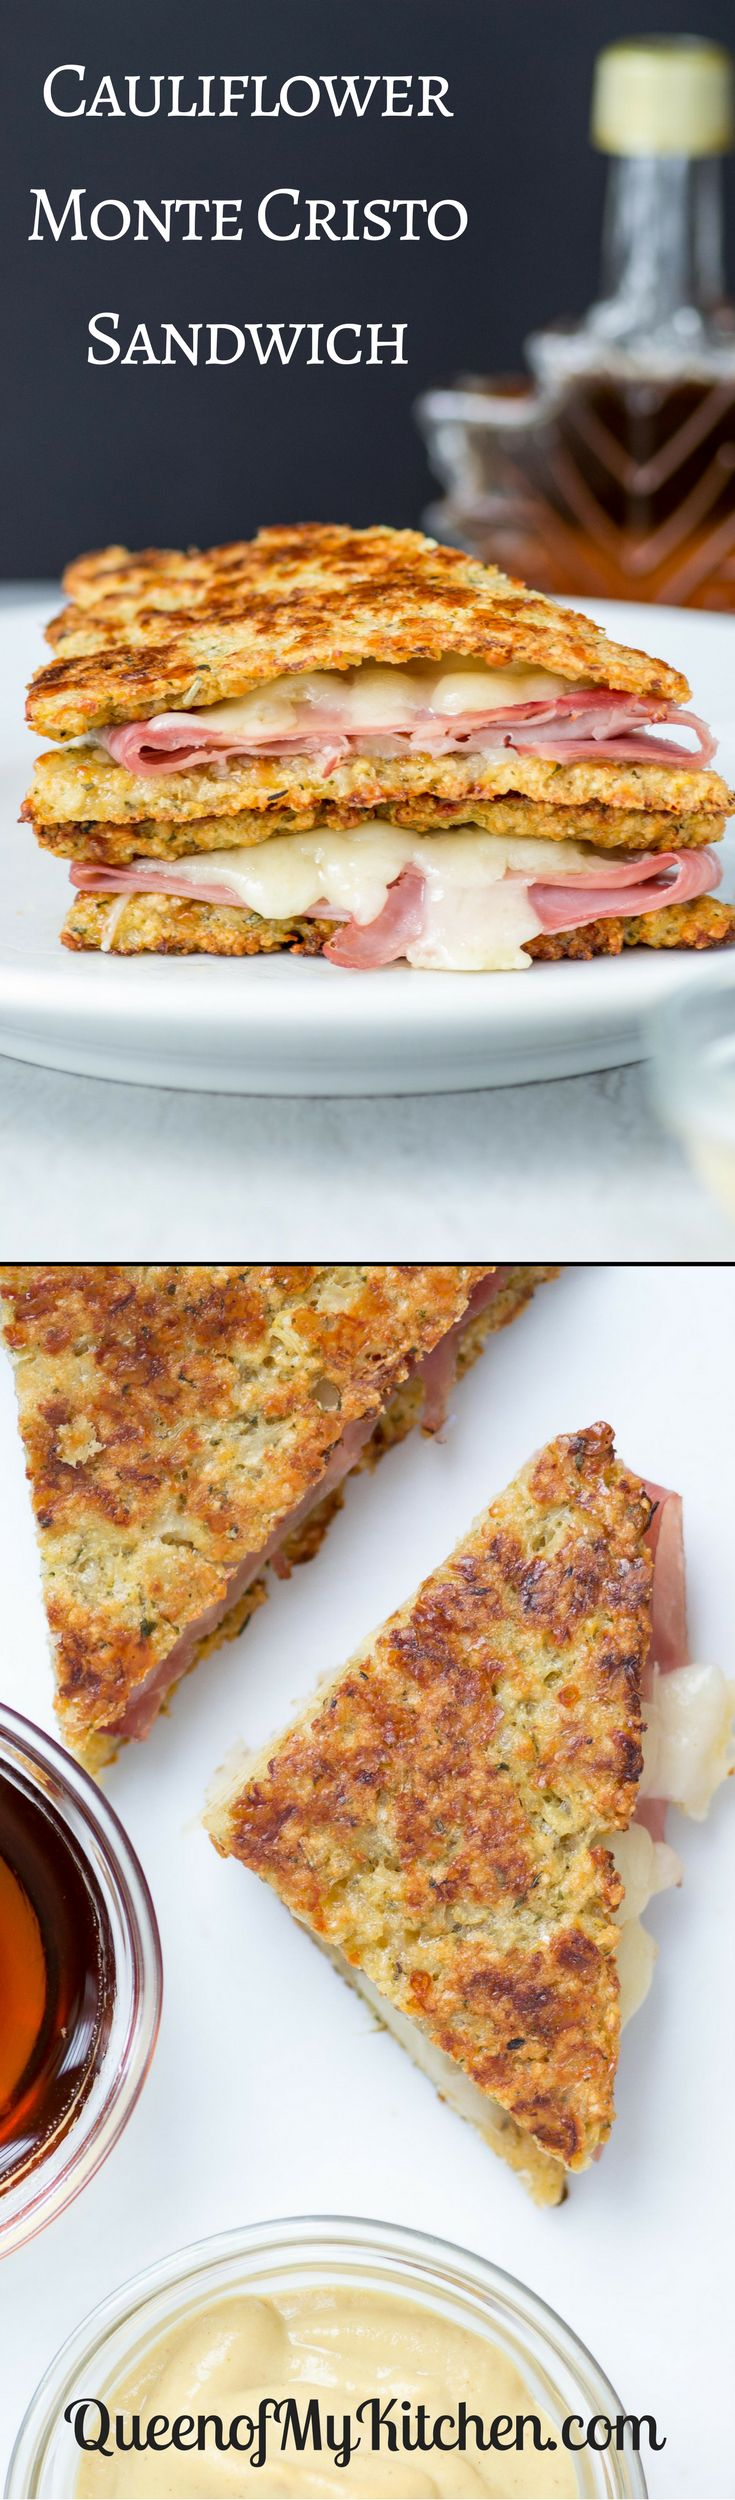 Cauliflower Monte Cristo Sandwiches – A lightened up version of the classic sandwich made with slices of cauliflower bread instead of French toast. Gluten-free.   QueenofMyKitchen.com